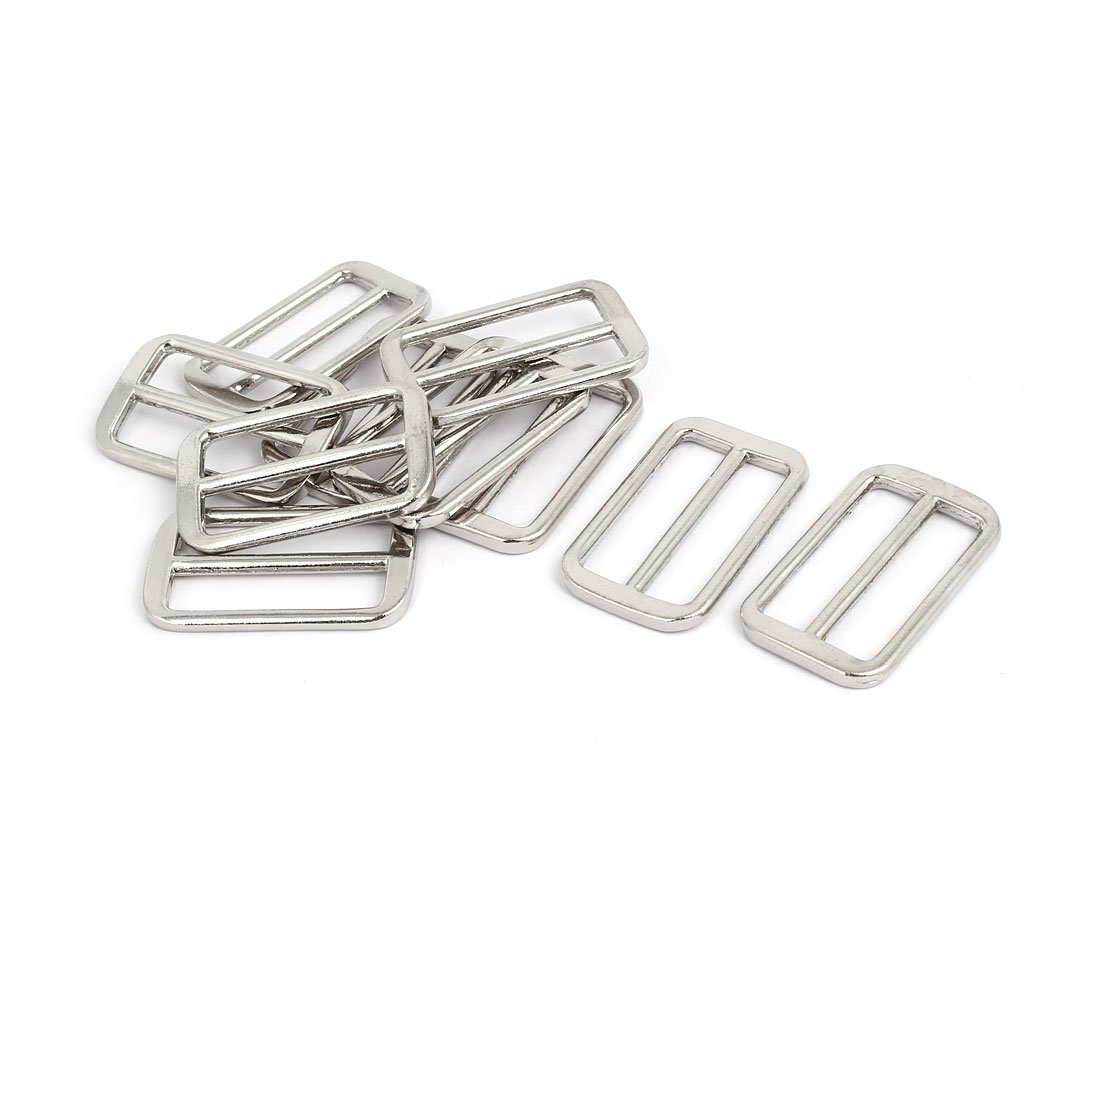 uxcell 48mmx29mmx3.5mm Adjustable Strap Slider Suitcase Bag Fitting Silver Tone 10pcs